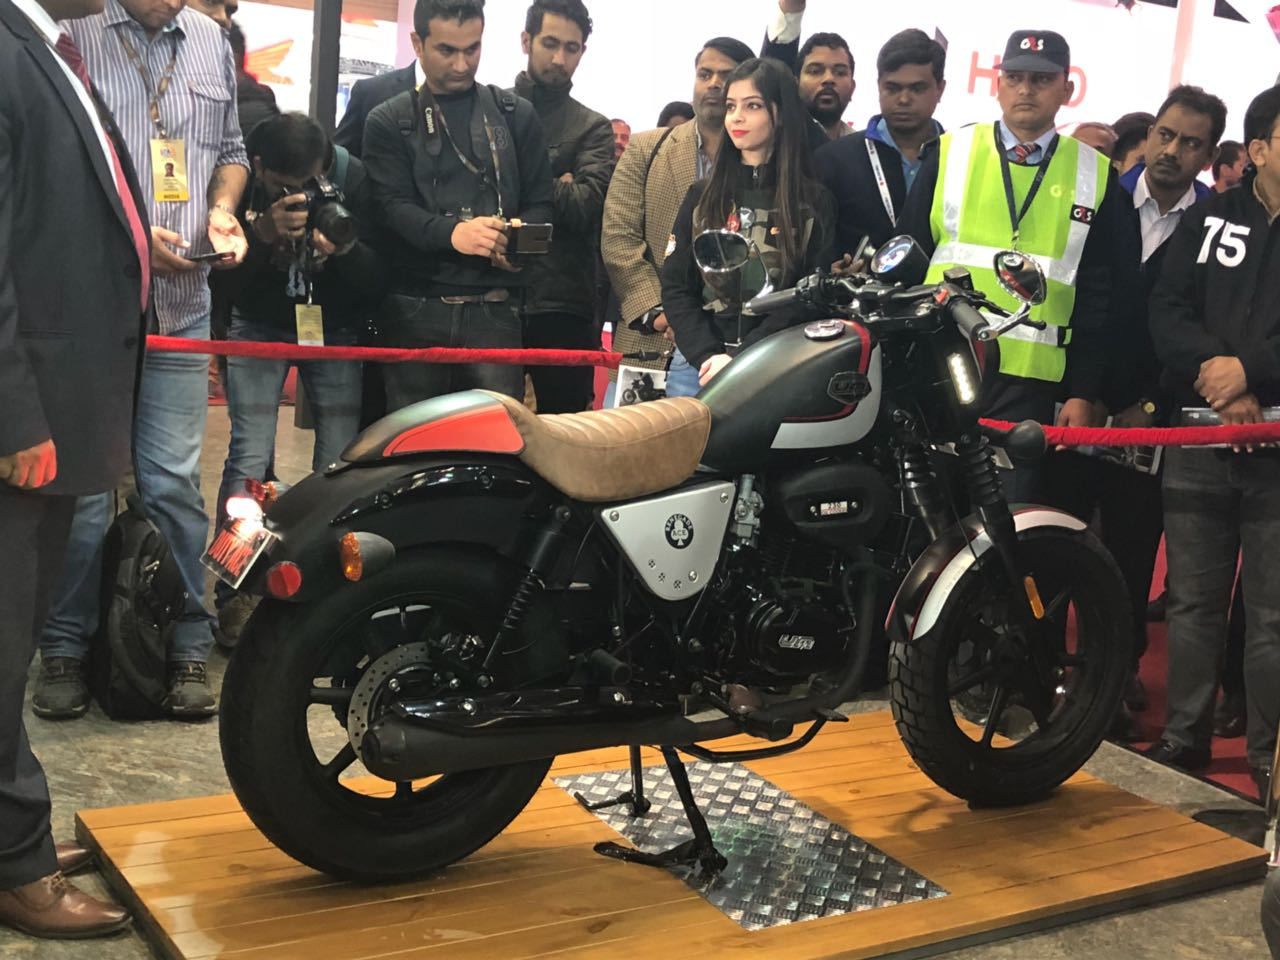 <p>That's the Renegade Duty Ace! Cafe style urban cruiser. Low handlebar. Removable cowl on rear seat. 41mm front forks. Oil cooled 230cc.18PS/17Nm. ABS and FI by Dec 2018. Starting price Rs 1.29 lakh ex Delhi.</p>